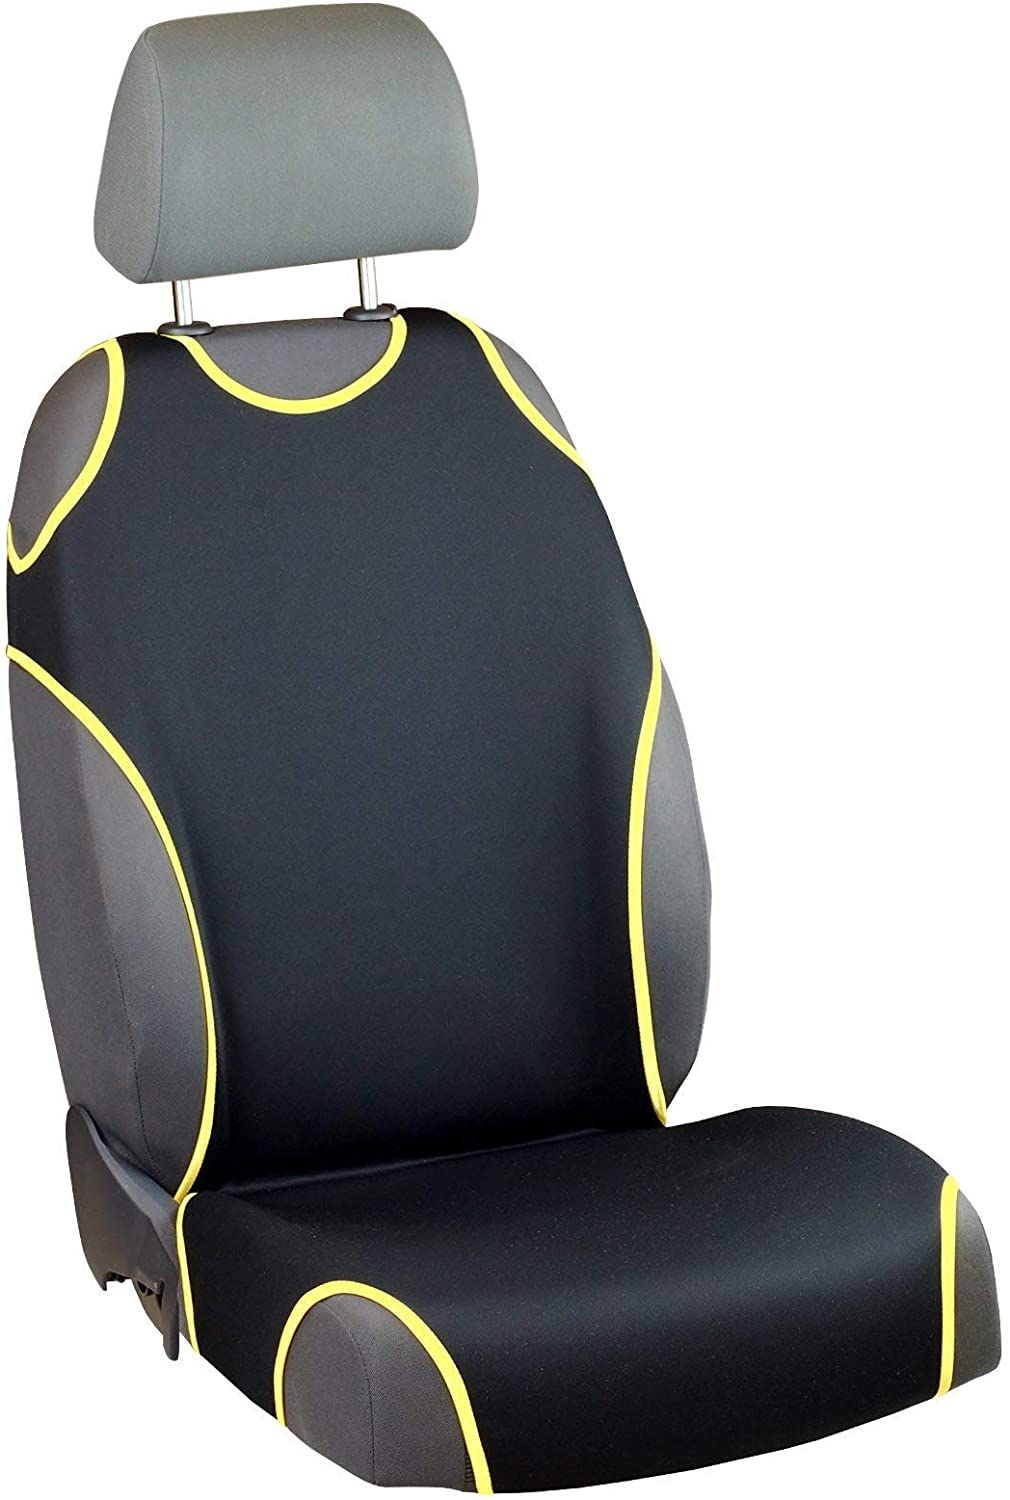 Zakschneider Car Seat Covers for Venga - Driver Seat - Color Premium Black & Yellow